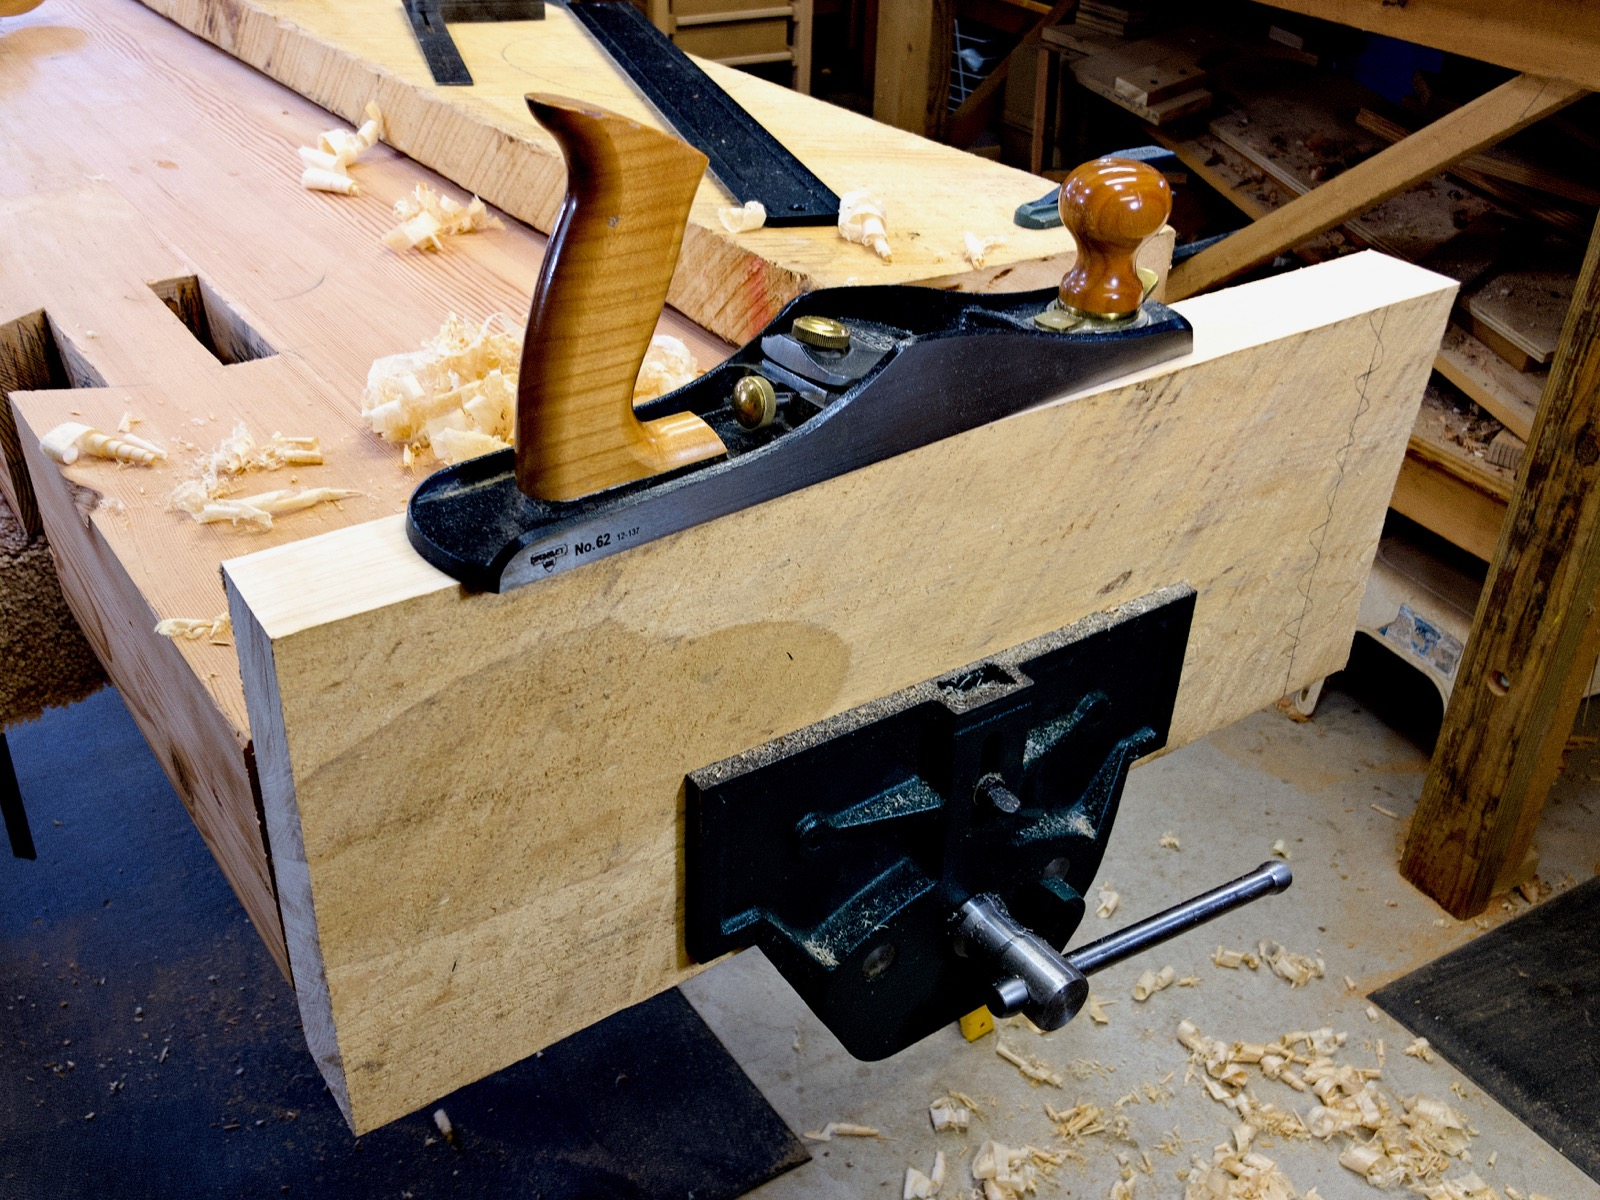 The end vise in action.